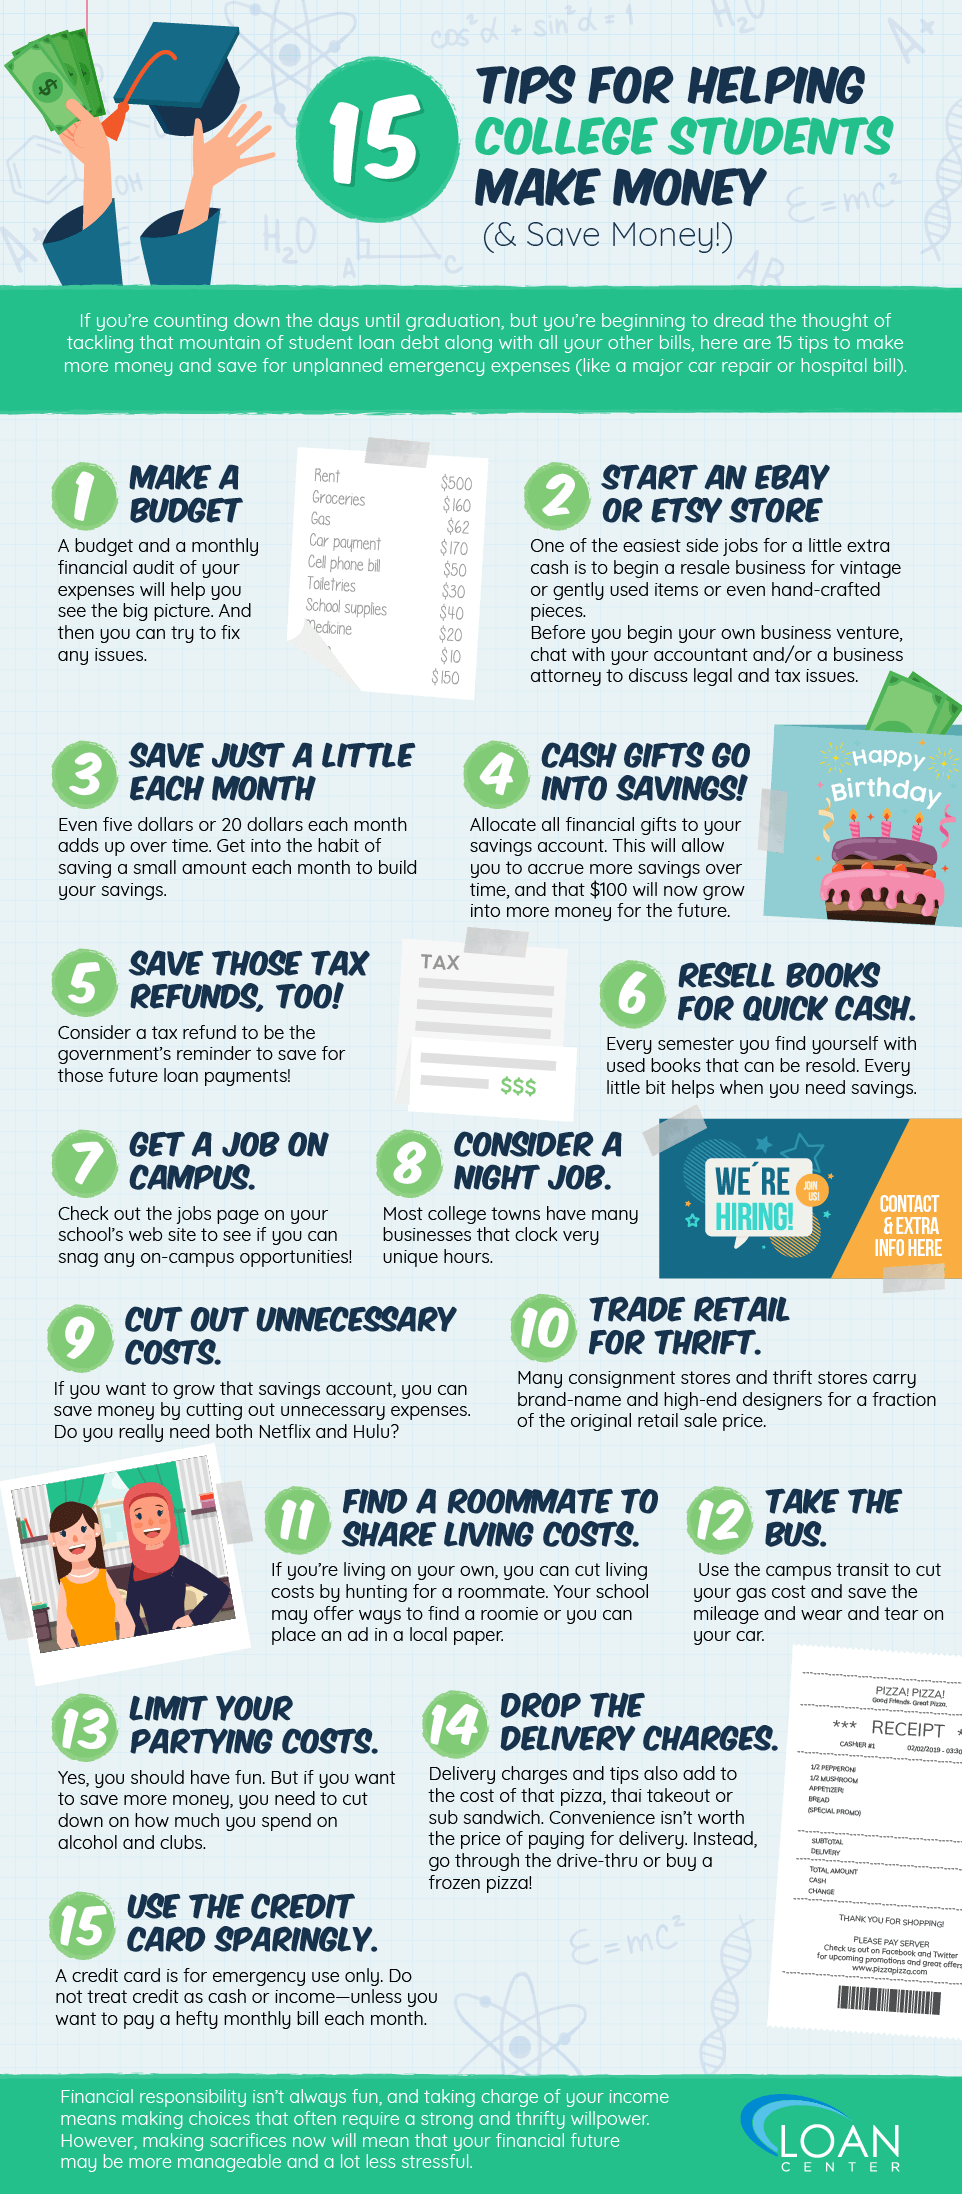 15 Tips for helping college students make money